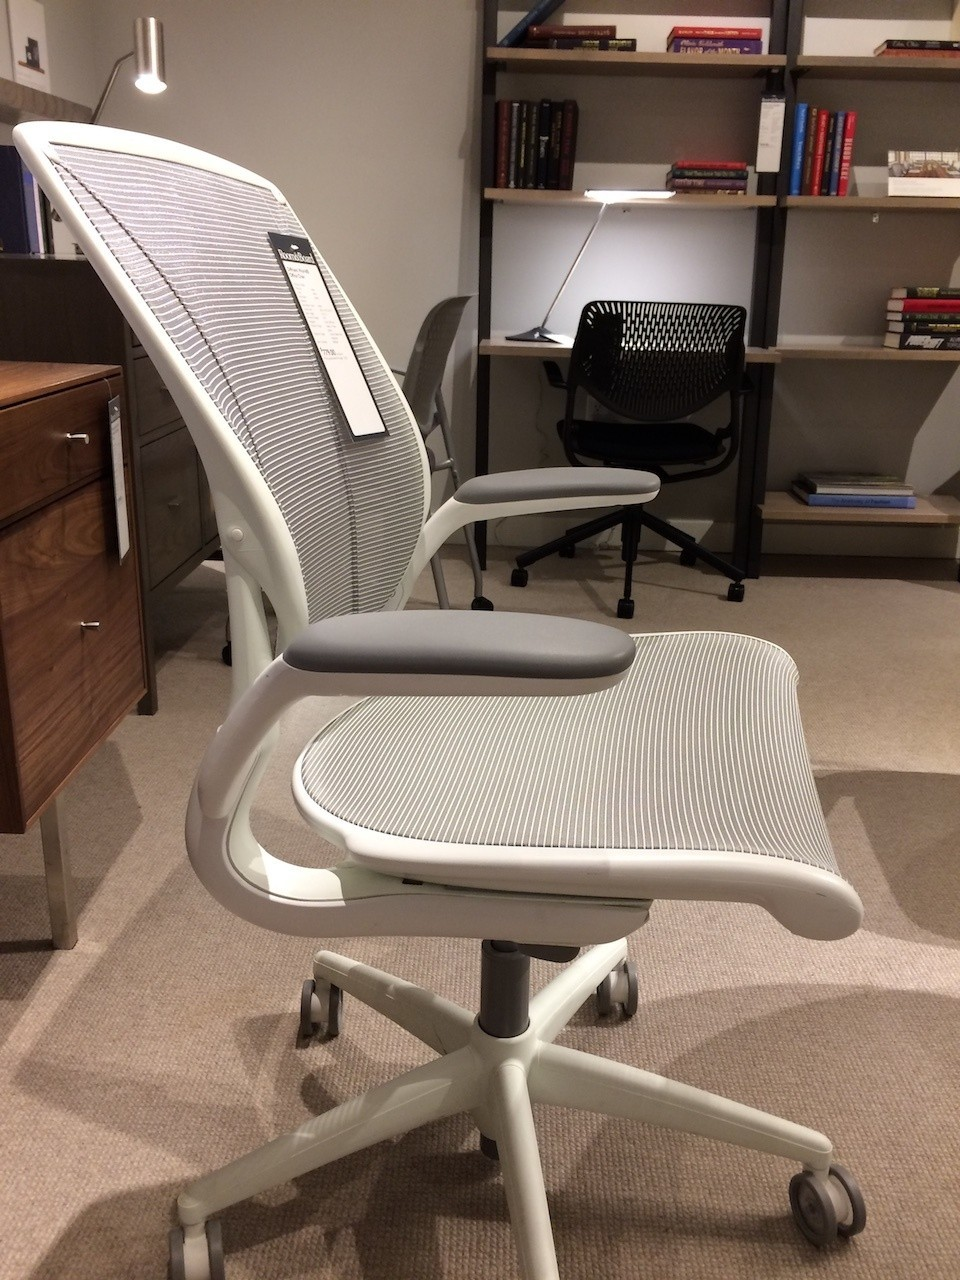 Humanscale Diffrient World Chair alternate side view